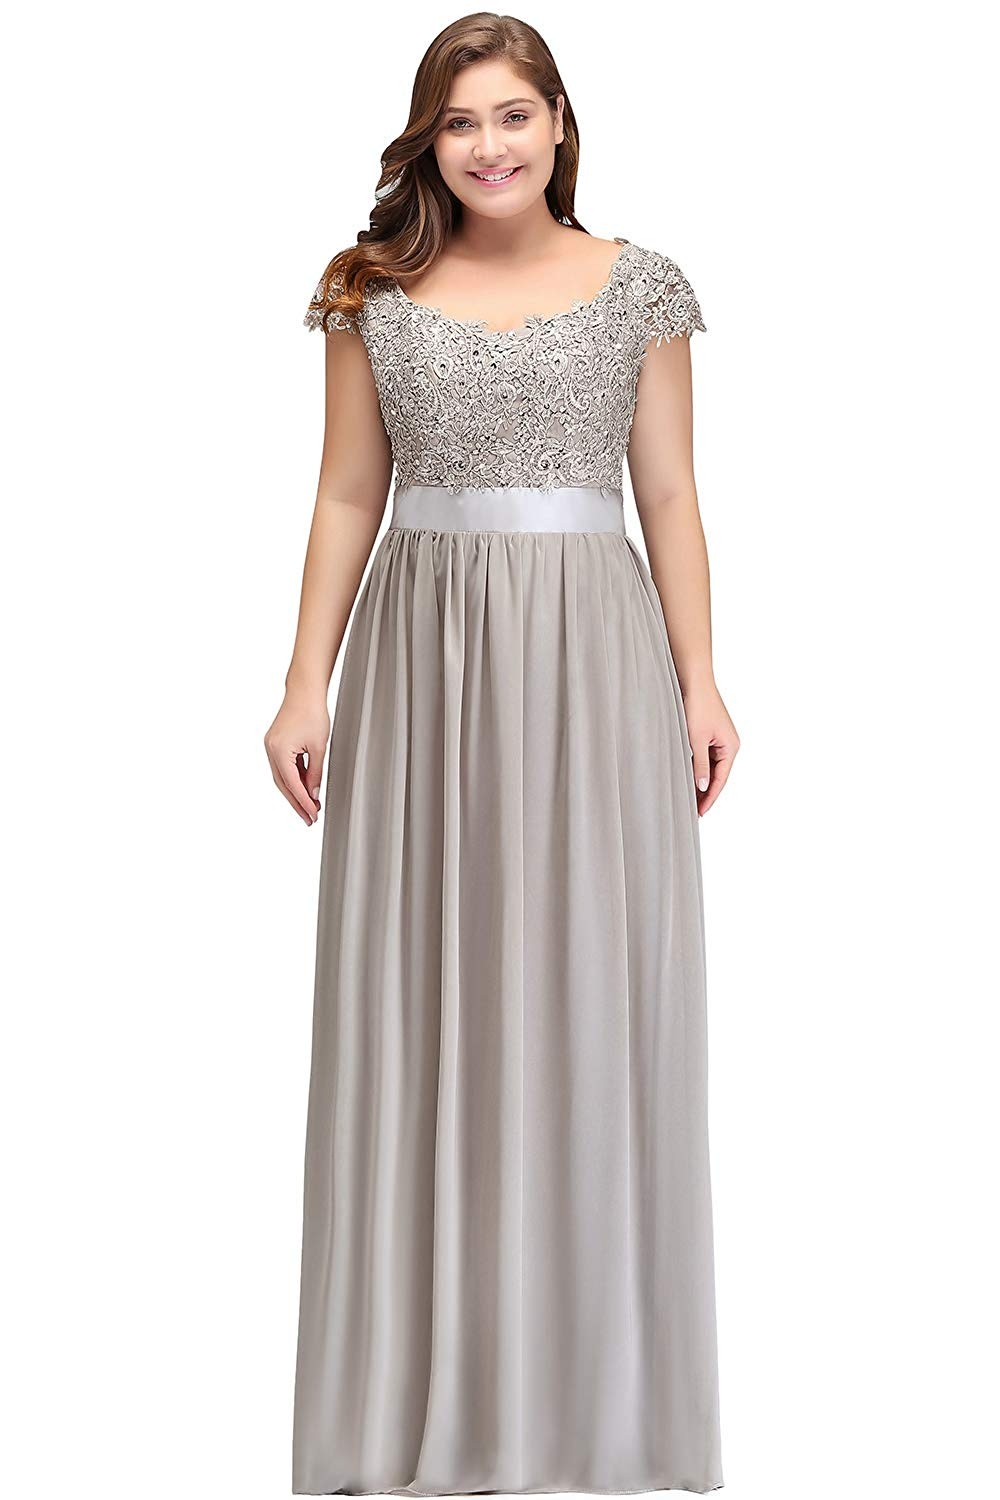 MisShow Women's Lace Chiffon Bridesmaid Dress A Line Long Prom Evening Gowns at Amazon Women's Clothing store: